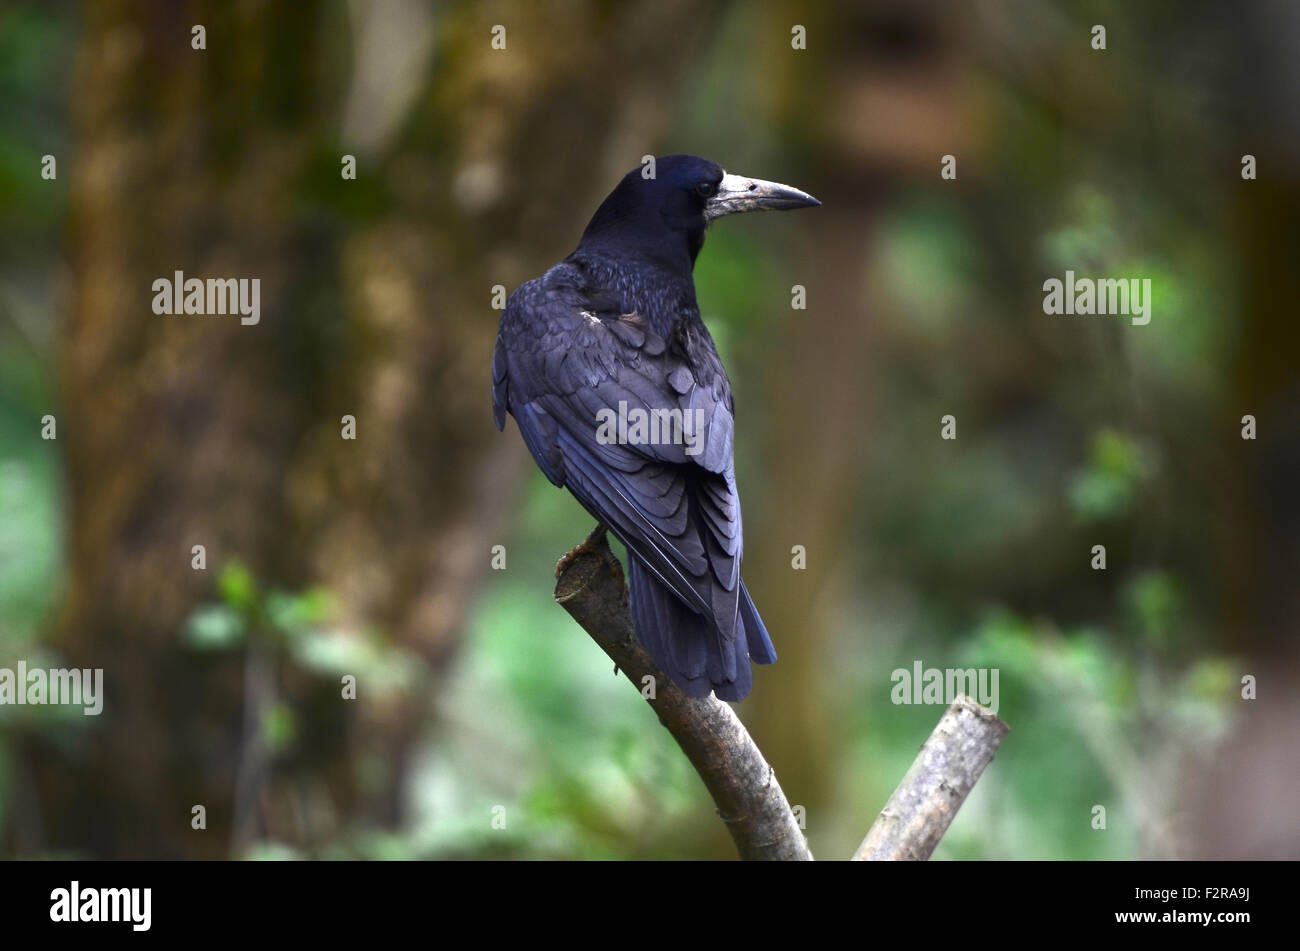 A rook on a twig UK - Stock Image